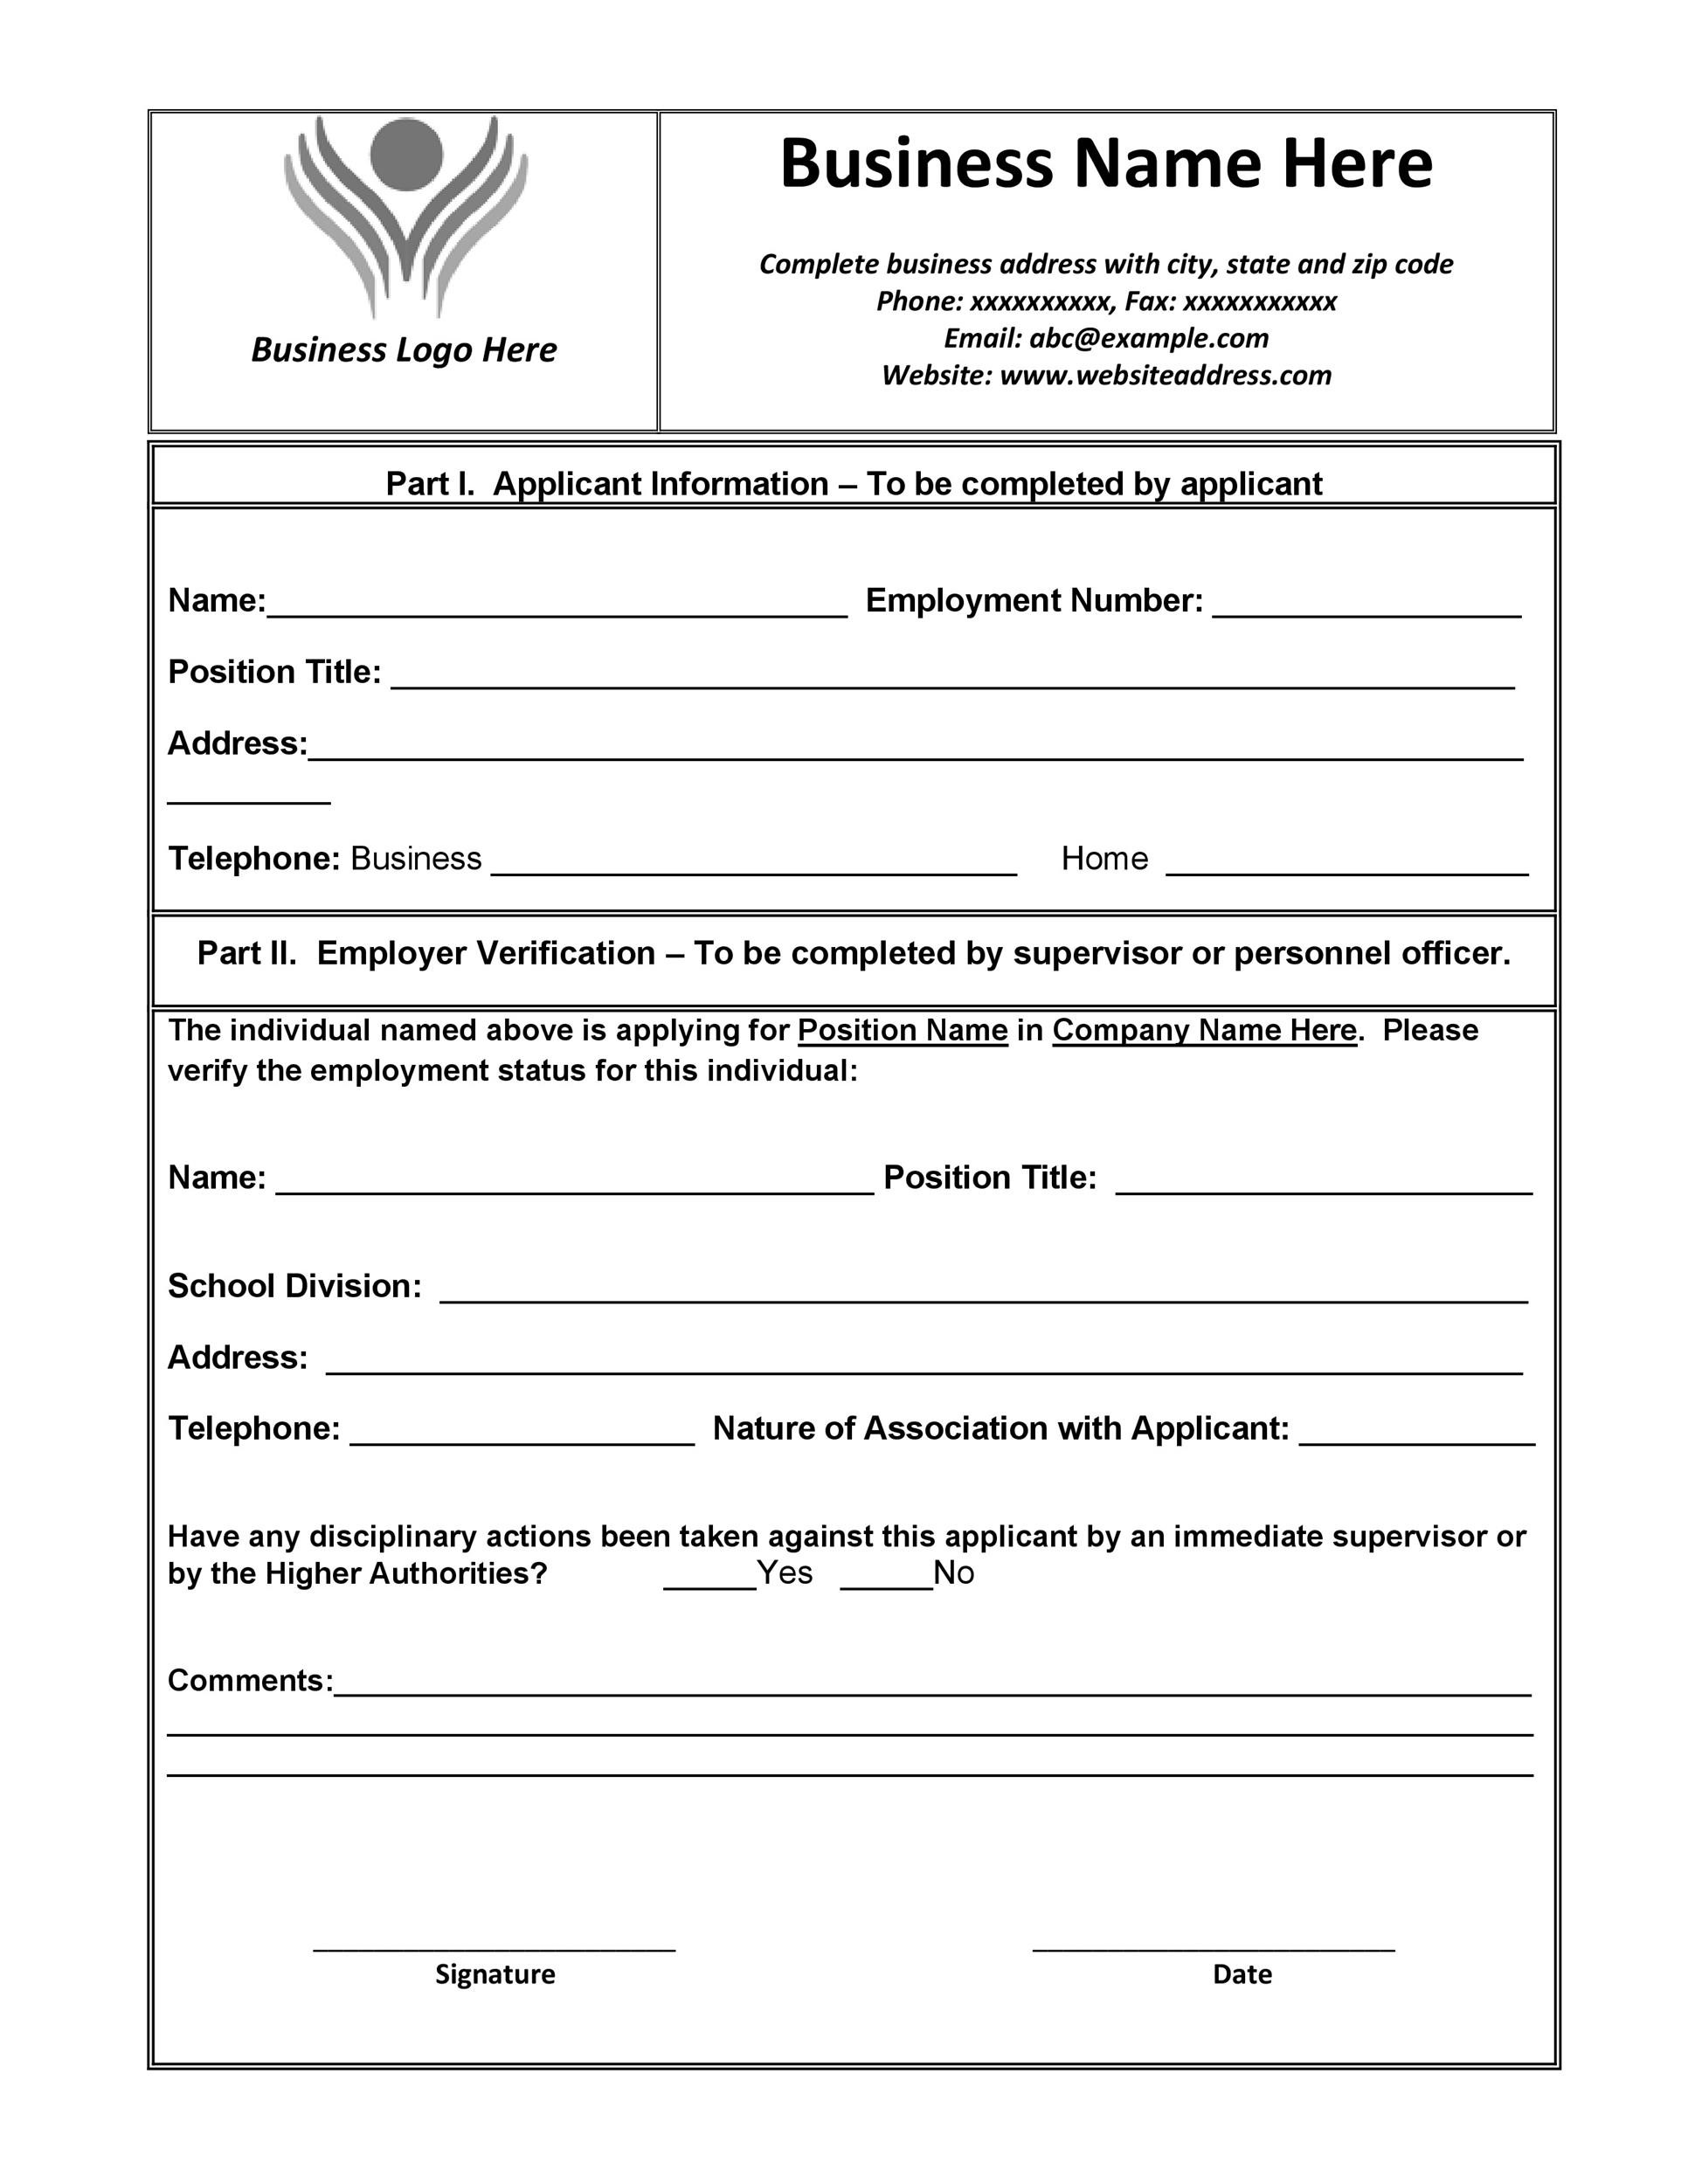 40 Proof of Employment Letters Verification Forms & Samples